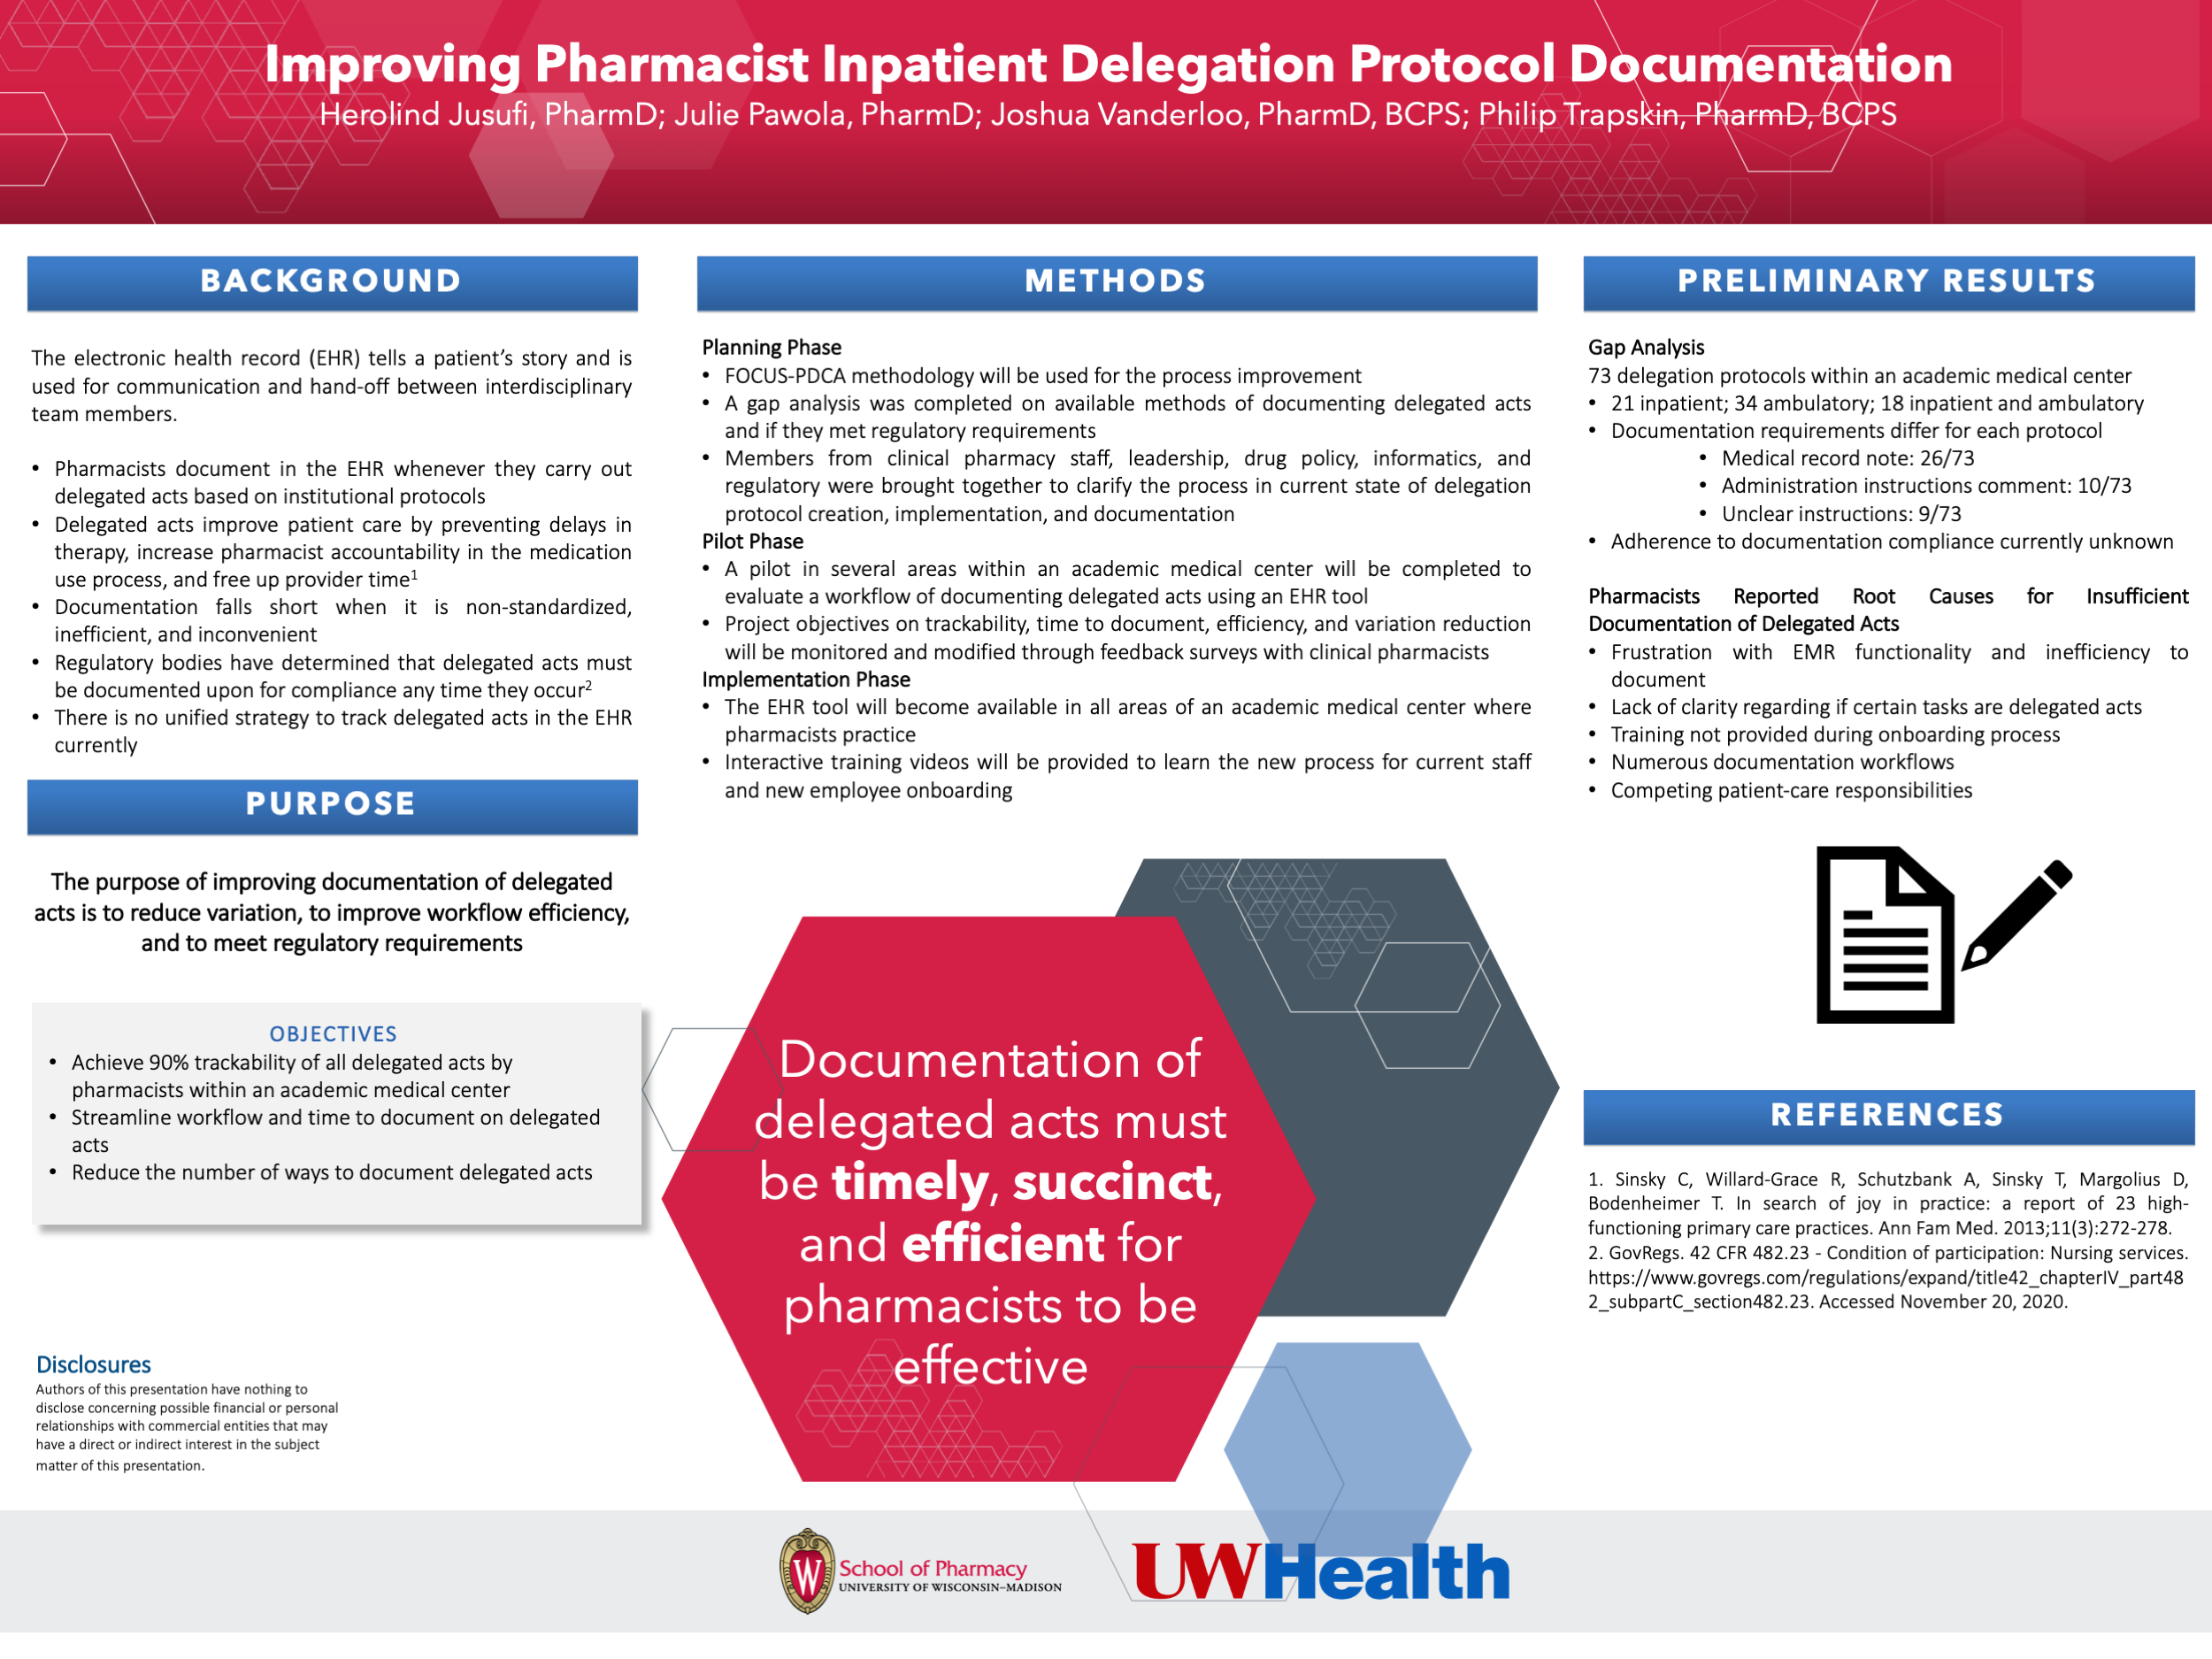 ASHP Poster